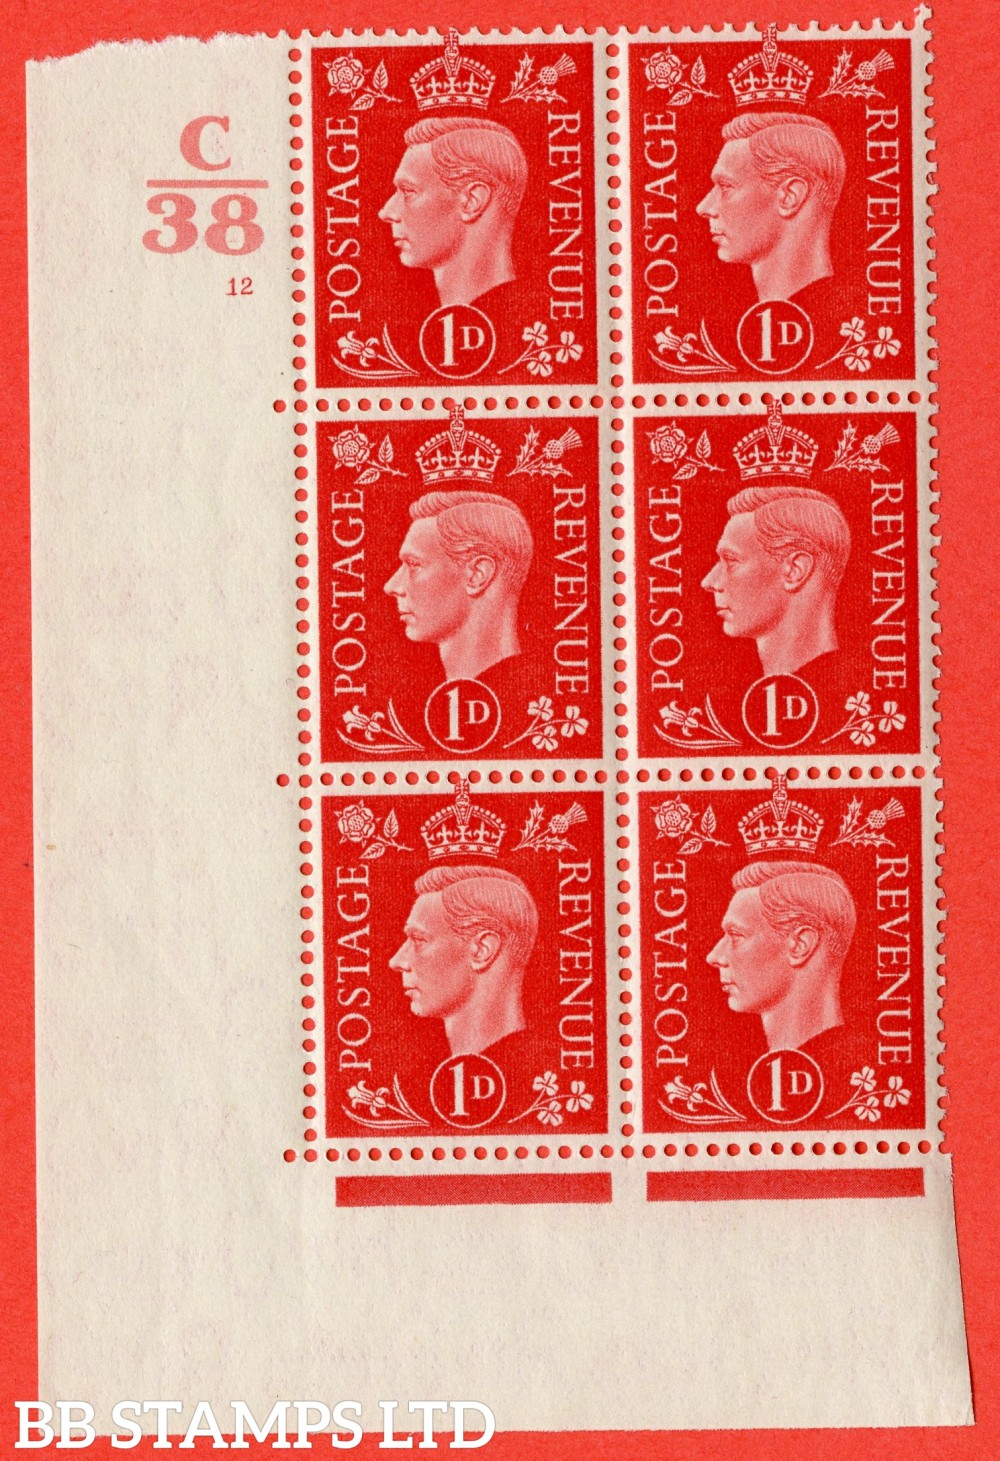 """SG. 463. Q4. 1d Scarlet. A superb UNMOUNTED MINT """" Control C38 cylinder 12 no dot """" block of 6 with perf type 5 E/I."""